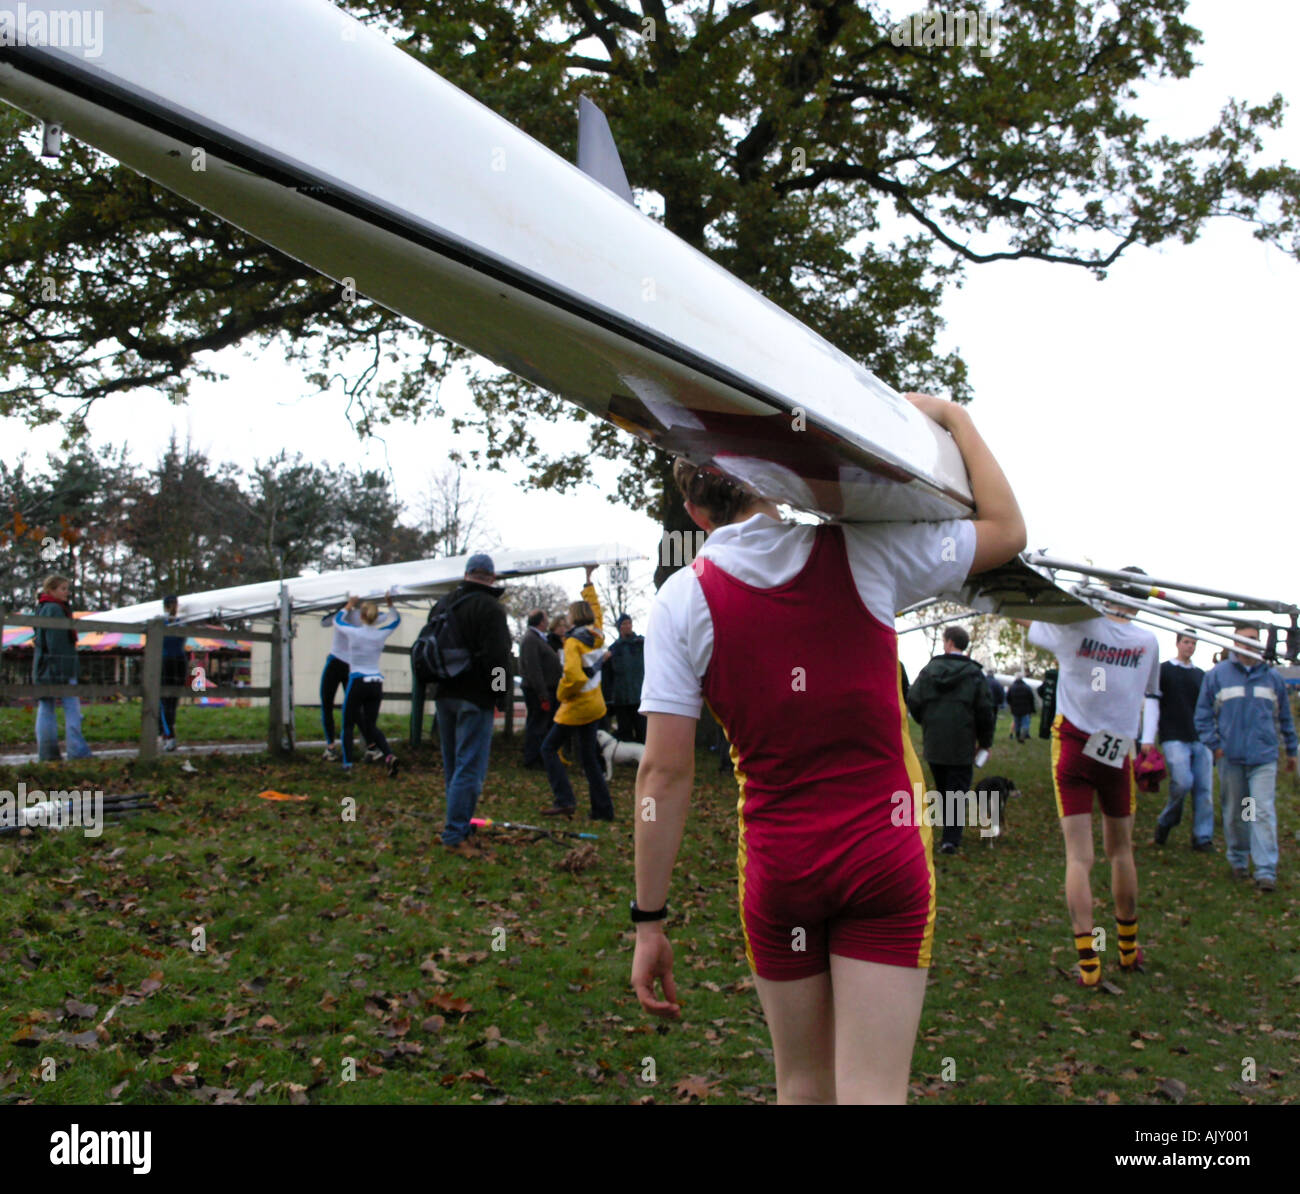 youth carrying a skiff at a regatta on the River Thames - Stock Image